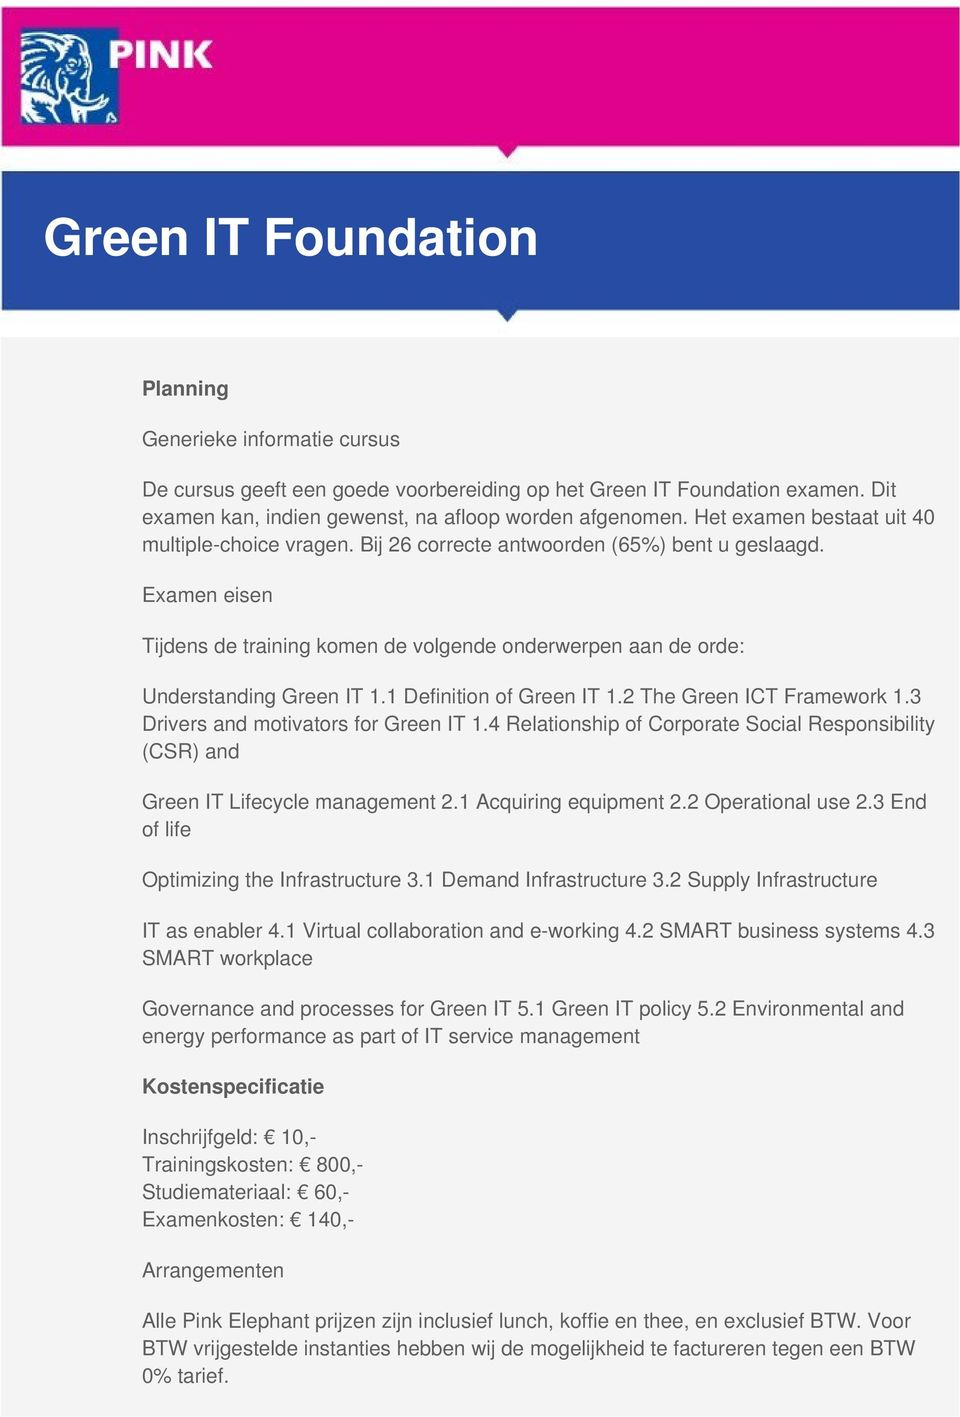 Examen eisen Tijdens de training komen de volgende onderwerpen aan de orde: Understanding Green IT 1.1 Definition of Green IT 1.2 The Green ICT Framework 1.3 Drivers and motivators for Green IT 1.